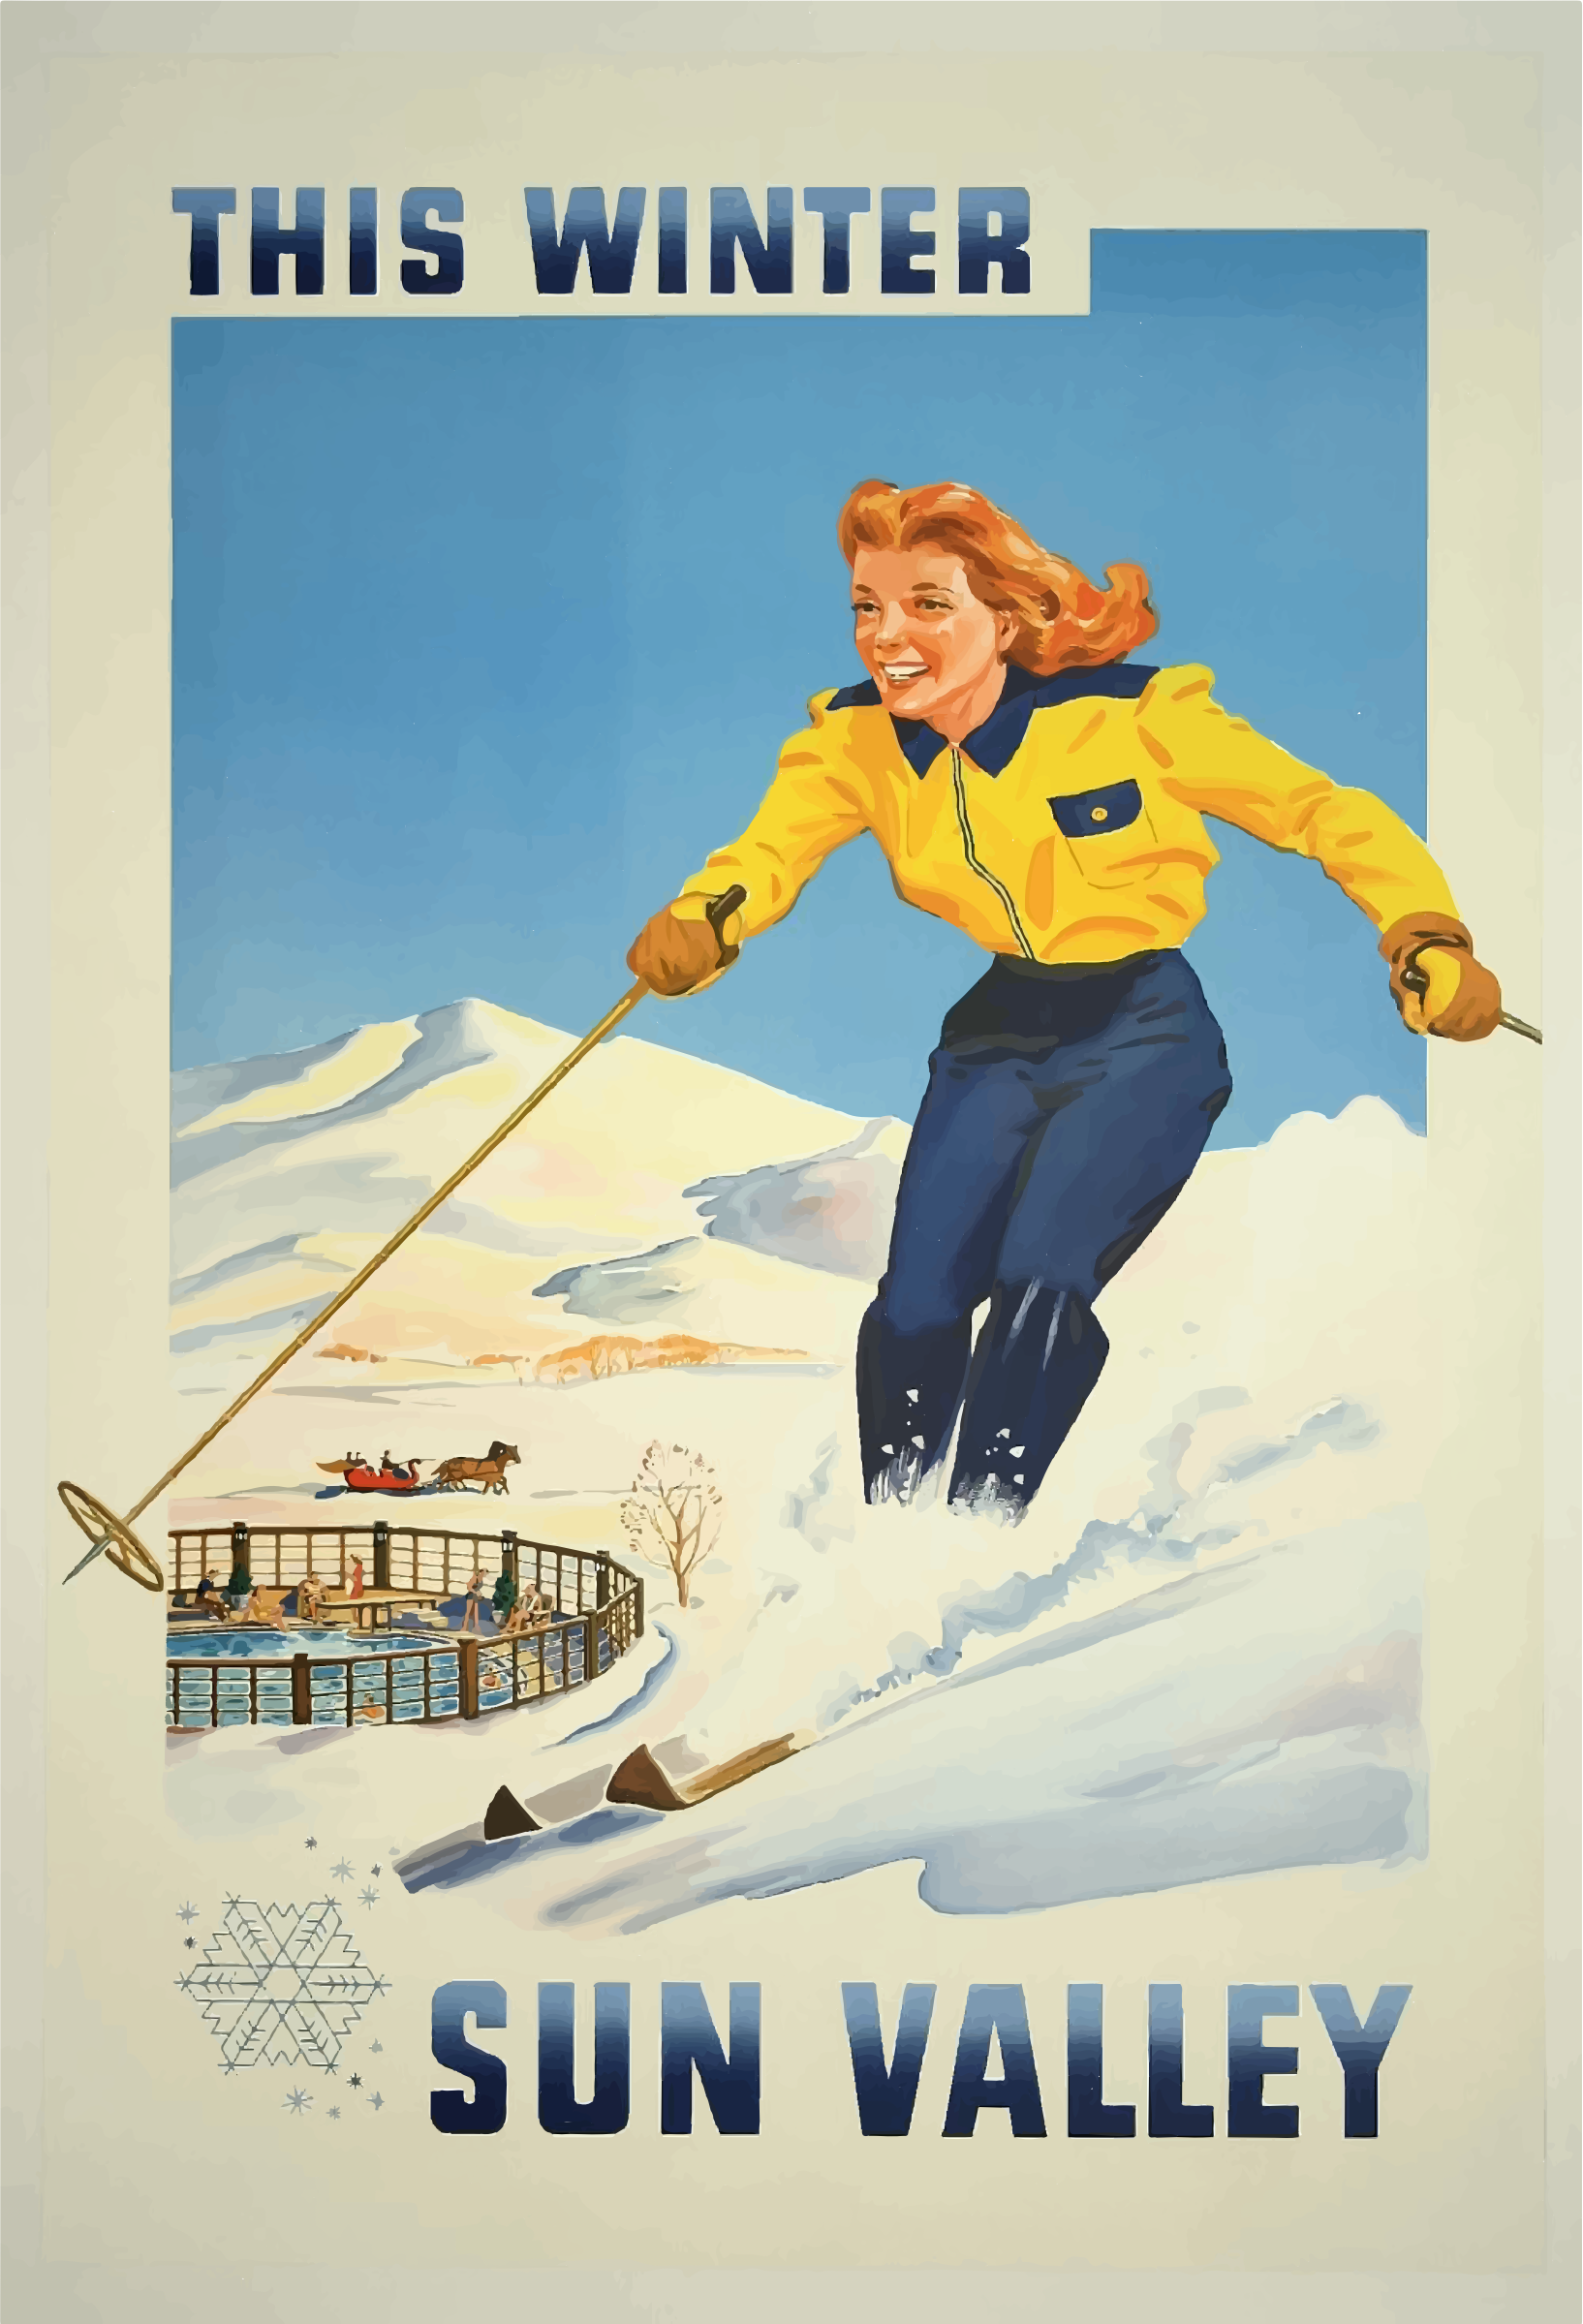 Vintage Travel Poster Sun Valley Idaho by GDJ